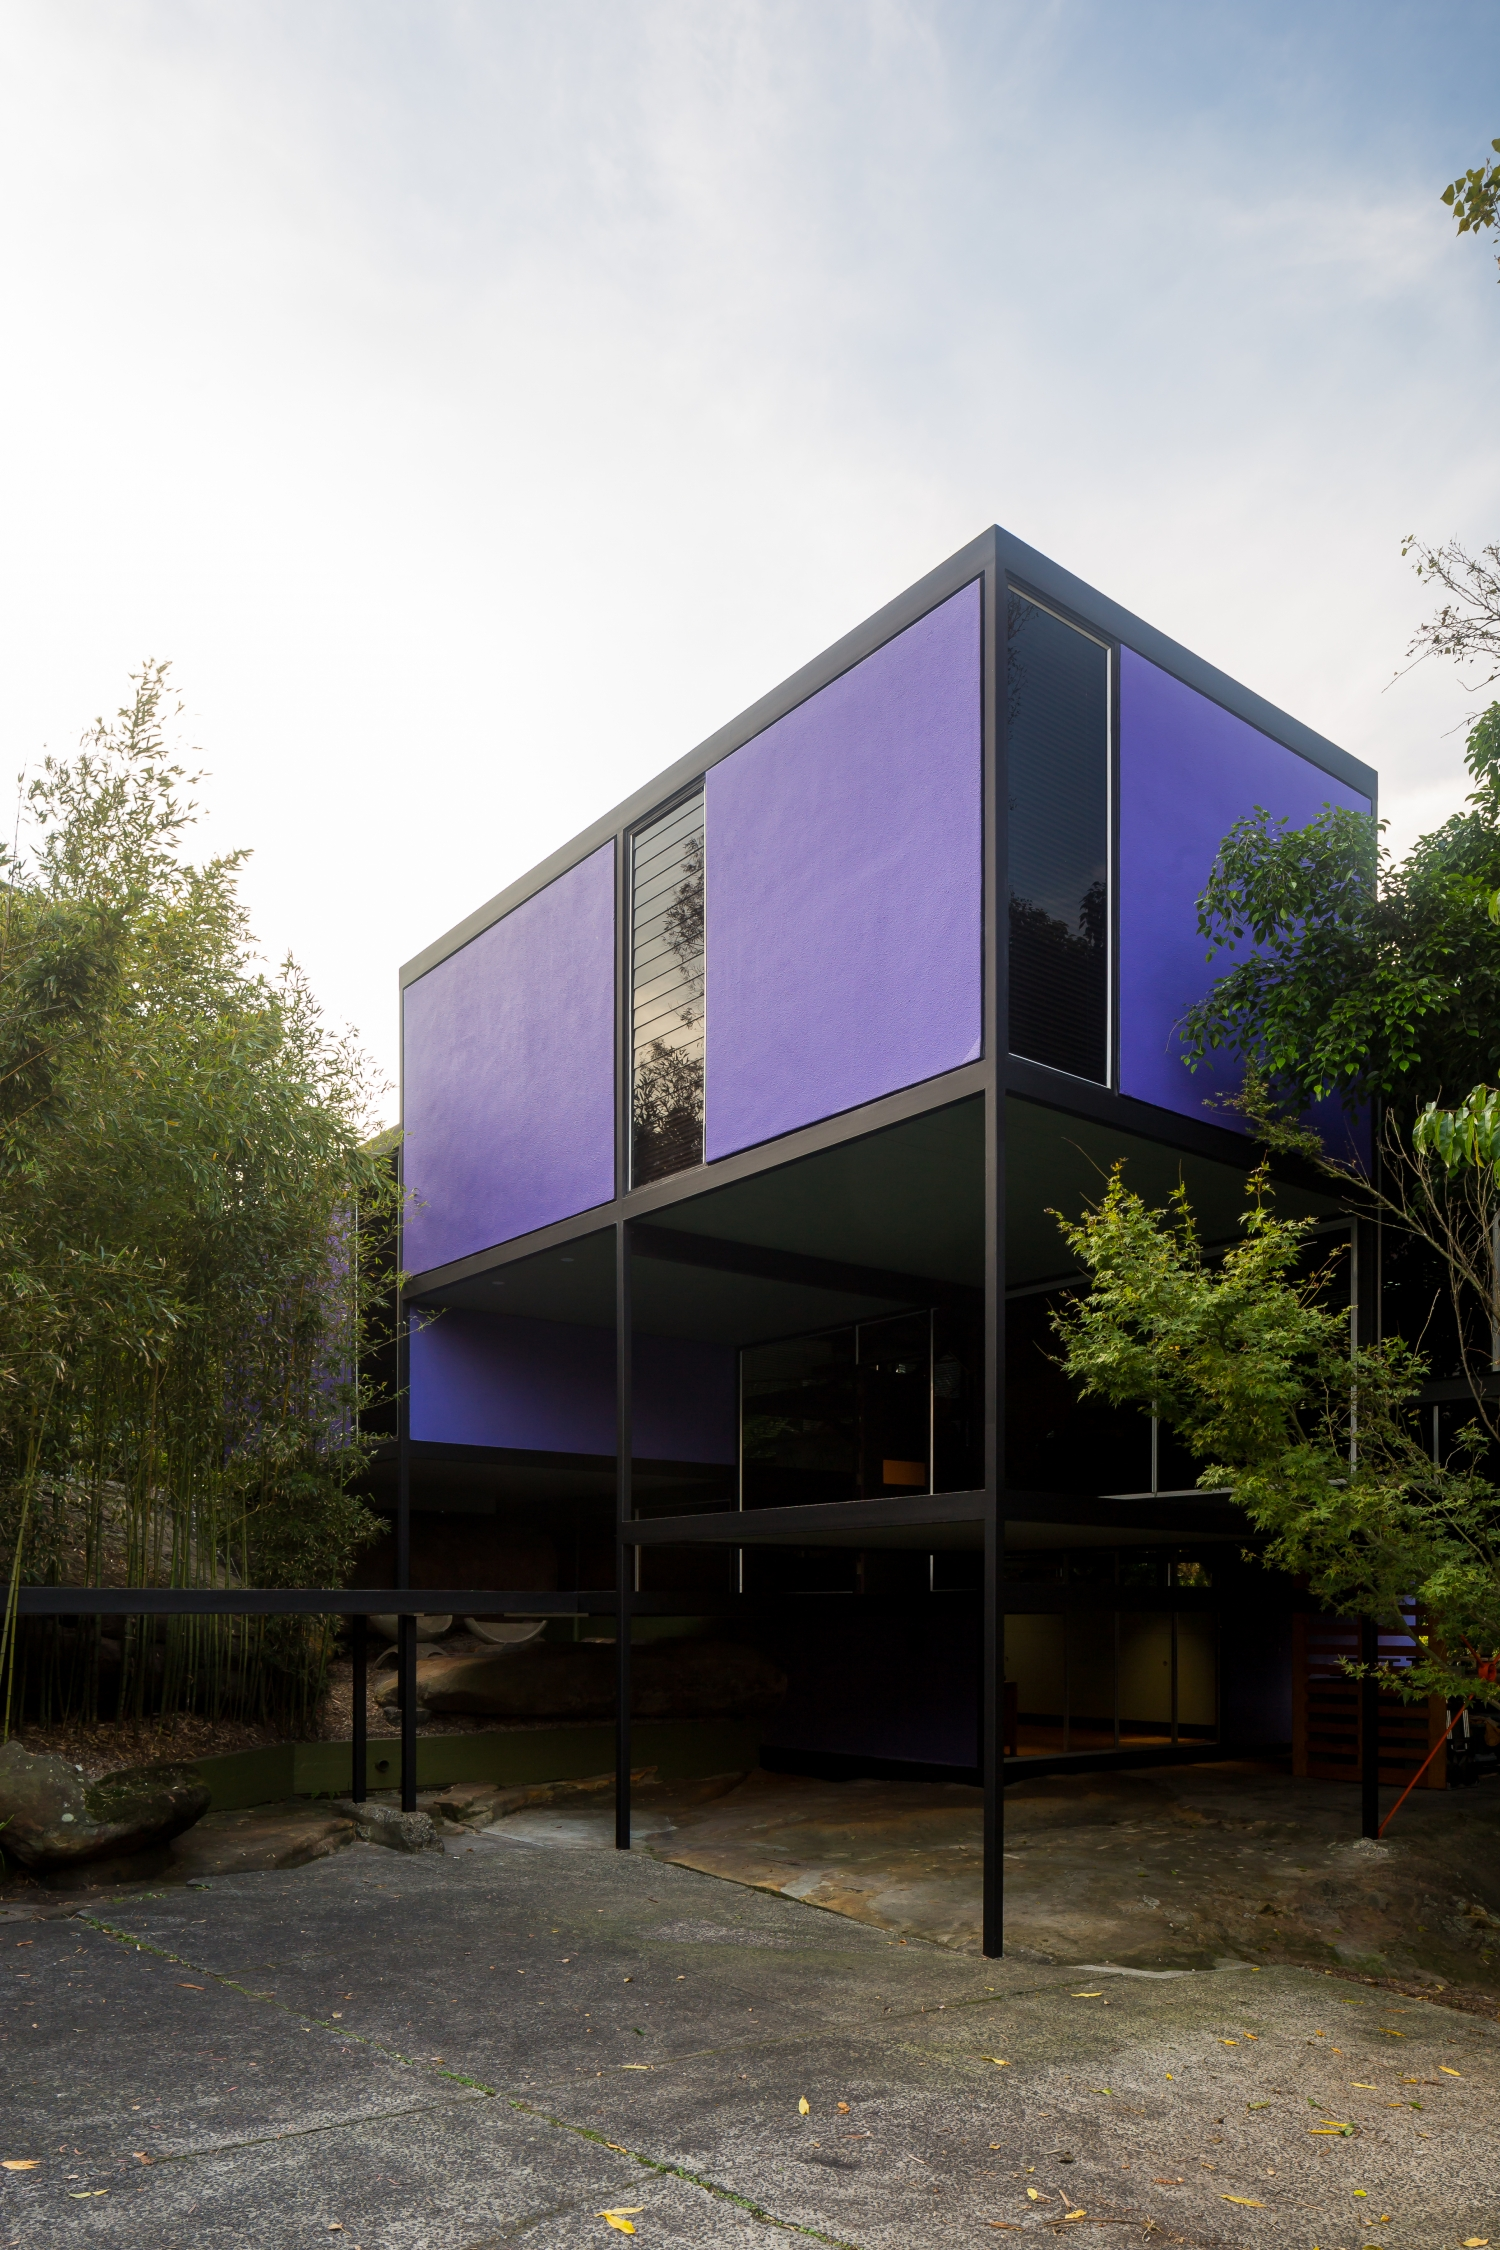 View of a house with large purple panels and tall, slim windows.